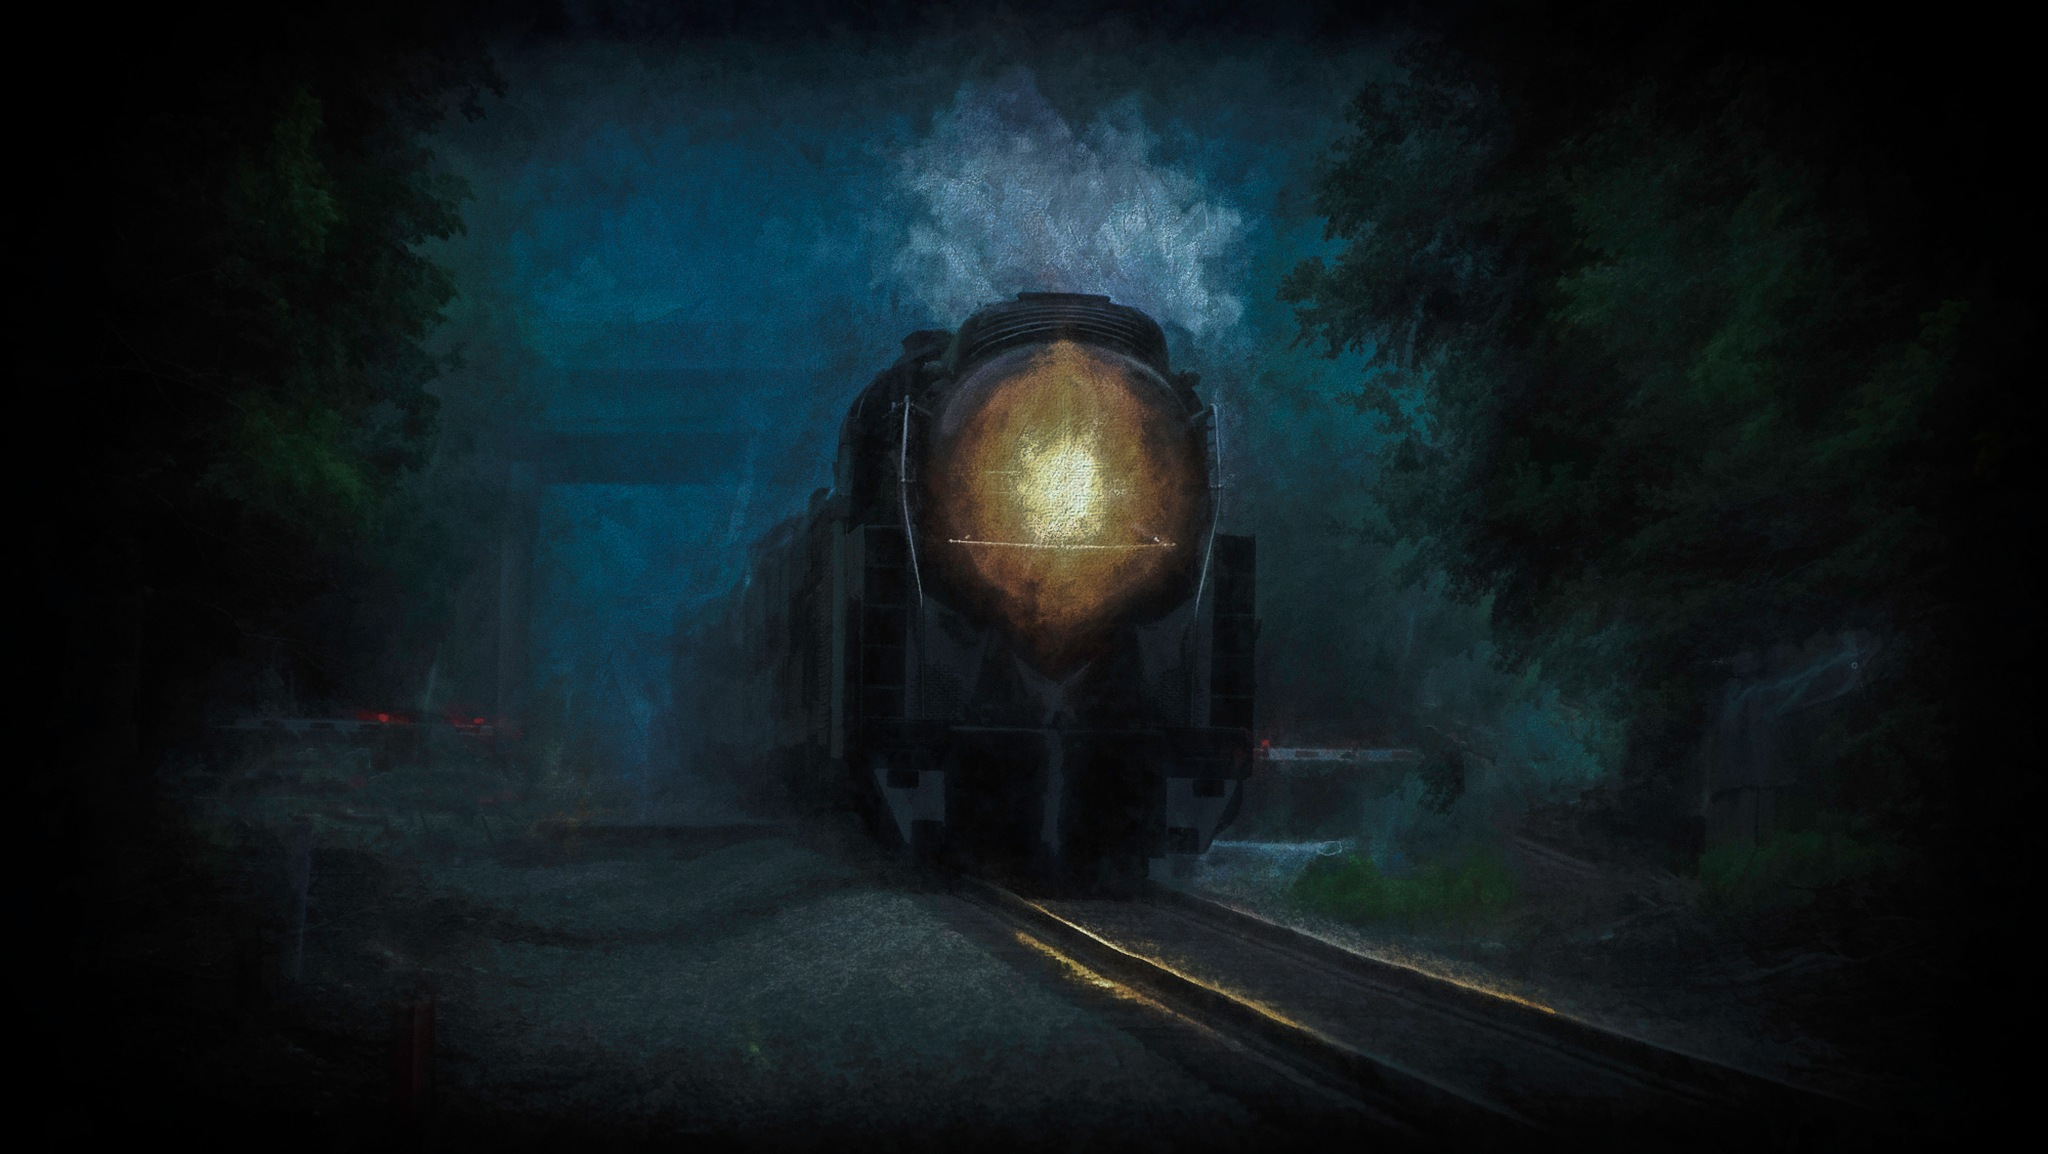 Night Train 2 by JohnEllingson